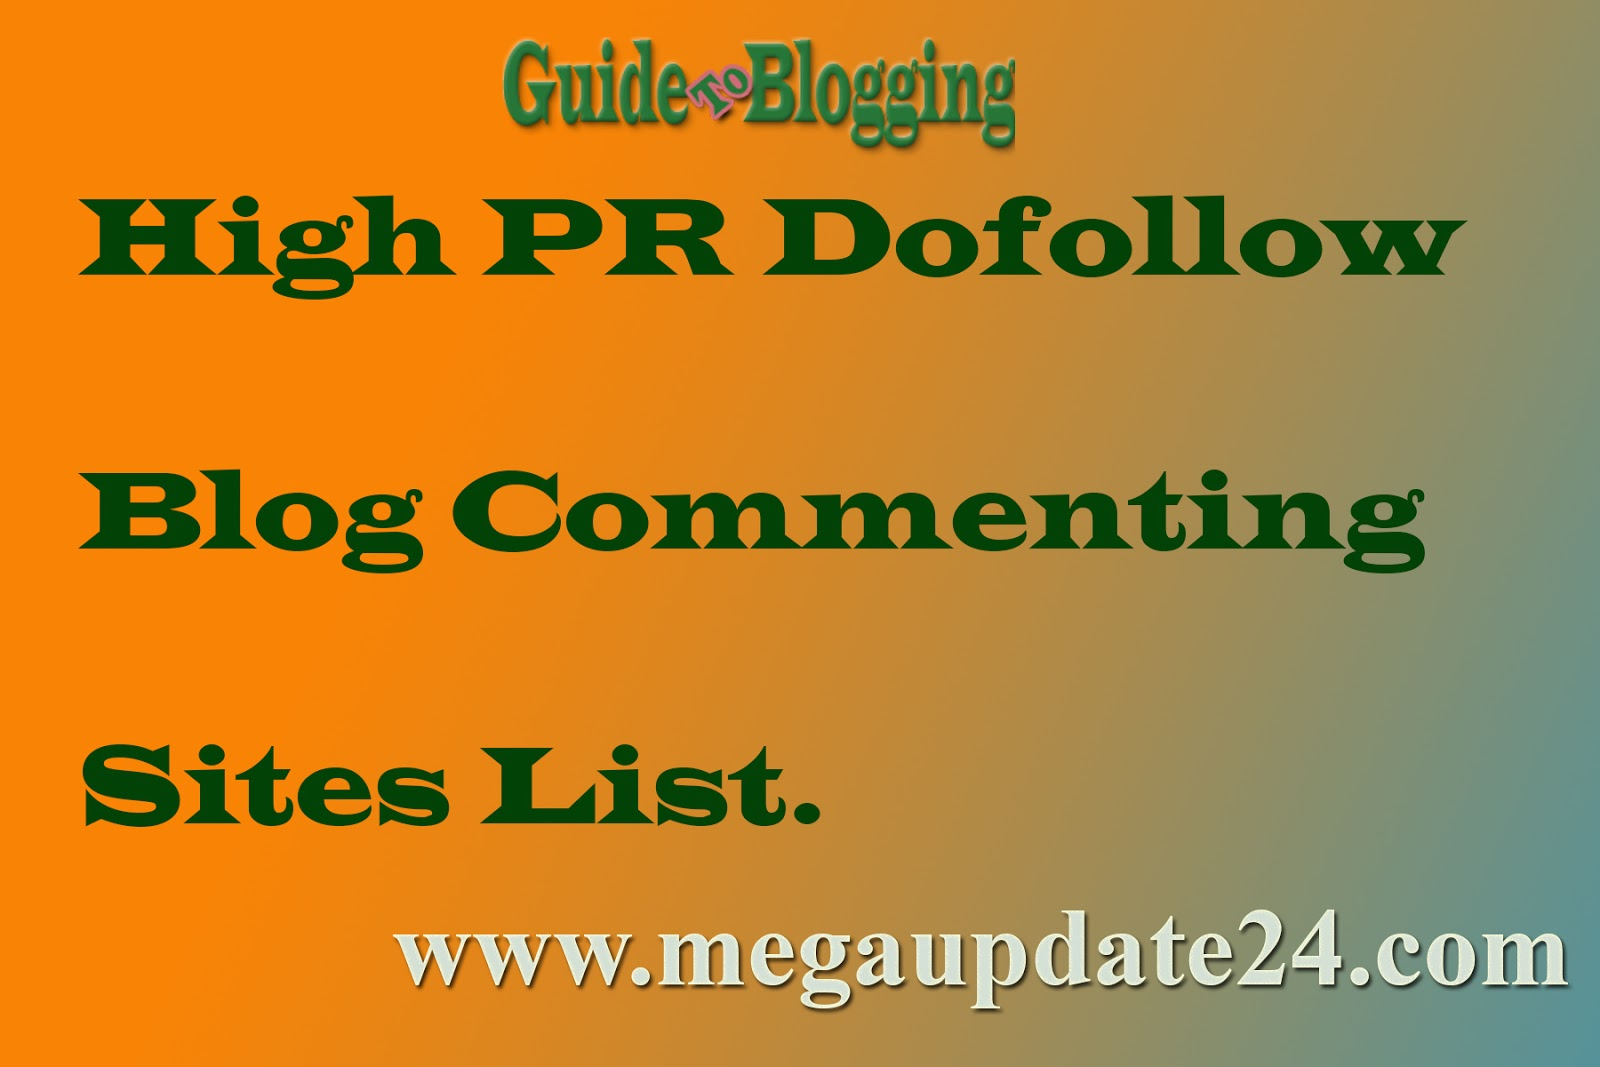 Dofollow Blog Commenting Sites: High PR List For Quality Backlink